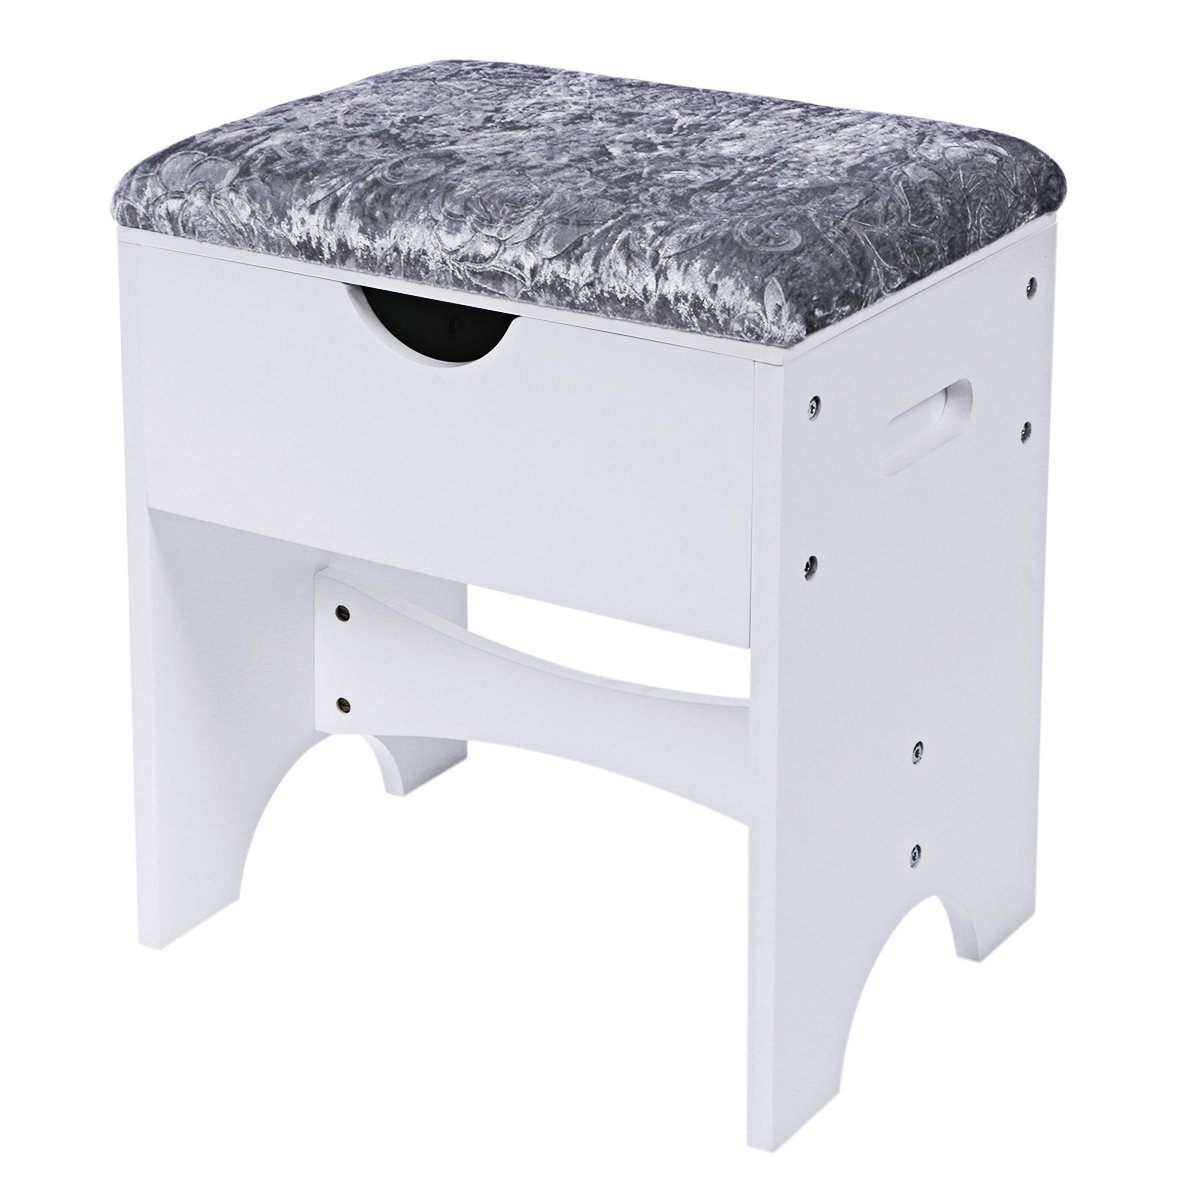 BEWISHOME Vanity Stool Bedroom Makeup Vanity Bench Piano Seat with Upholstered Seat and Storage, White FSD01M by BEWISHOME